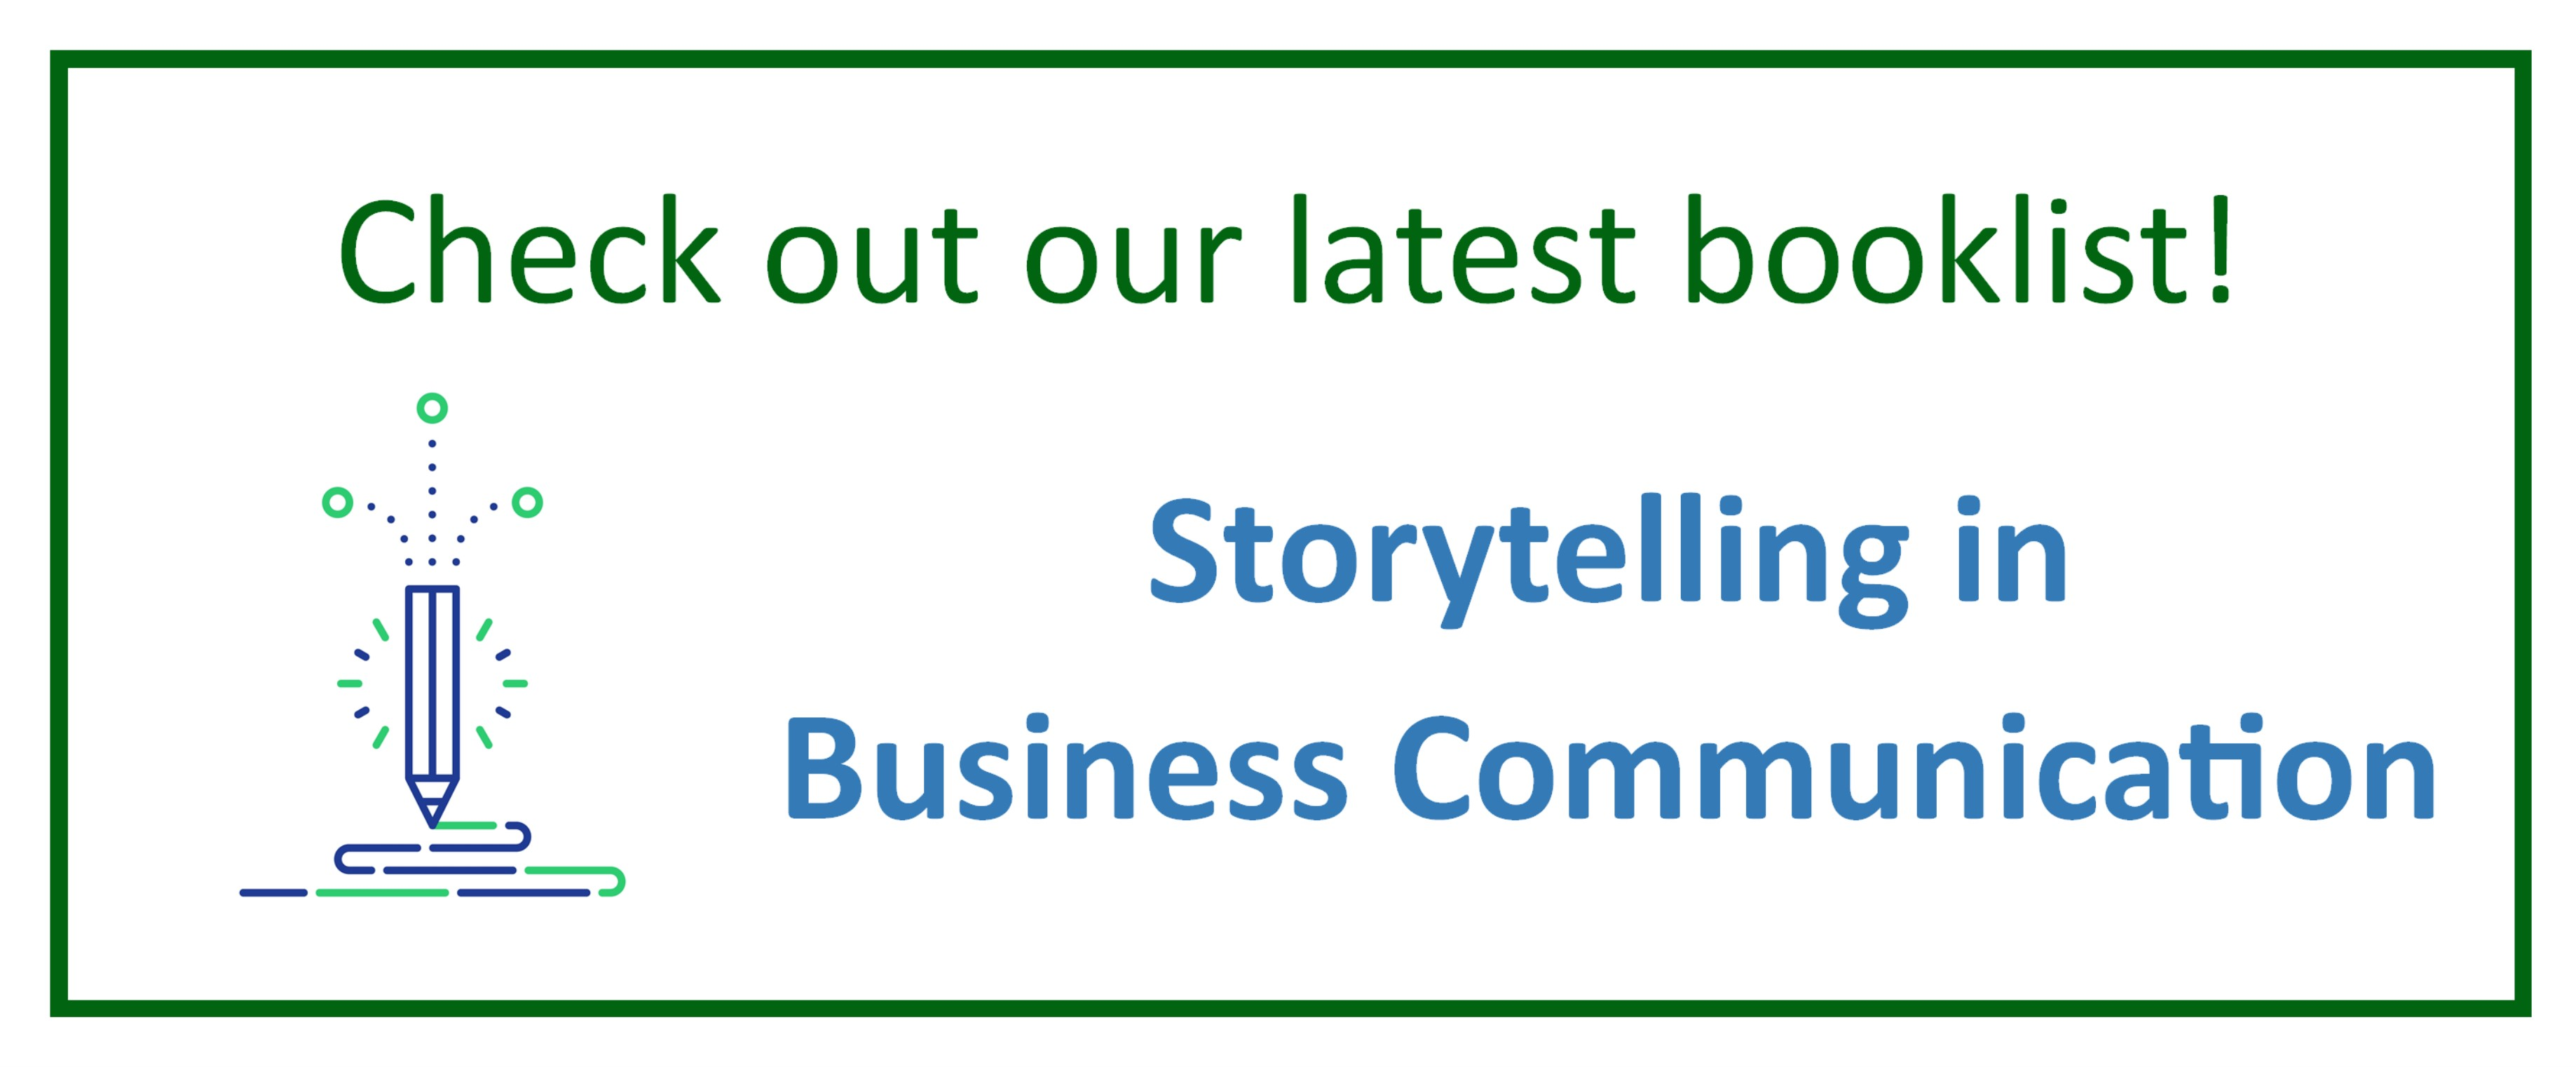 Check out our latest booklist! Storytelling in Business Communication